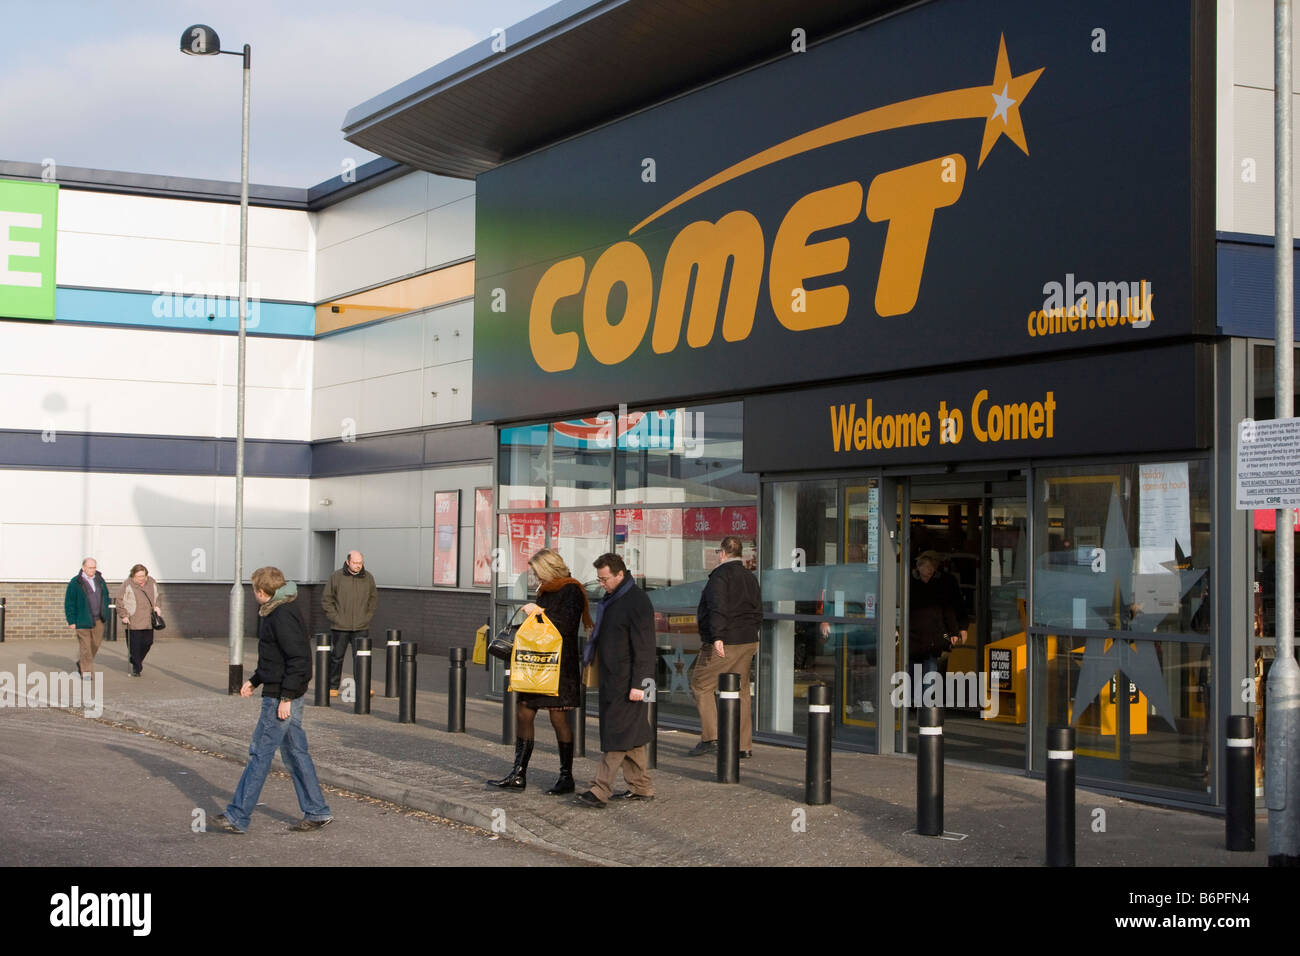 Comet is an electrical retailer in the United Kingdom, which is owned by KESA Electricals plc - Stock Image